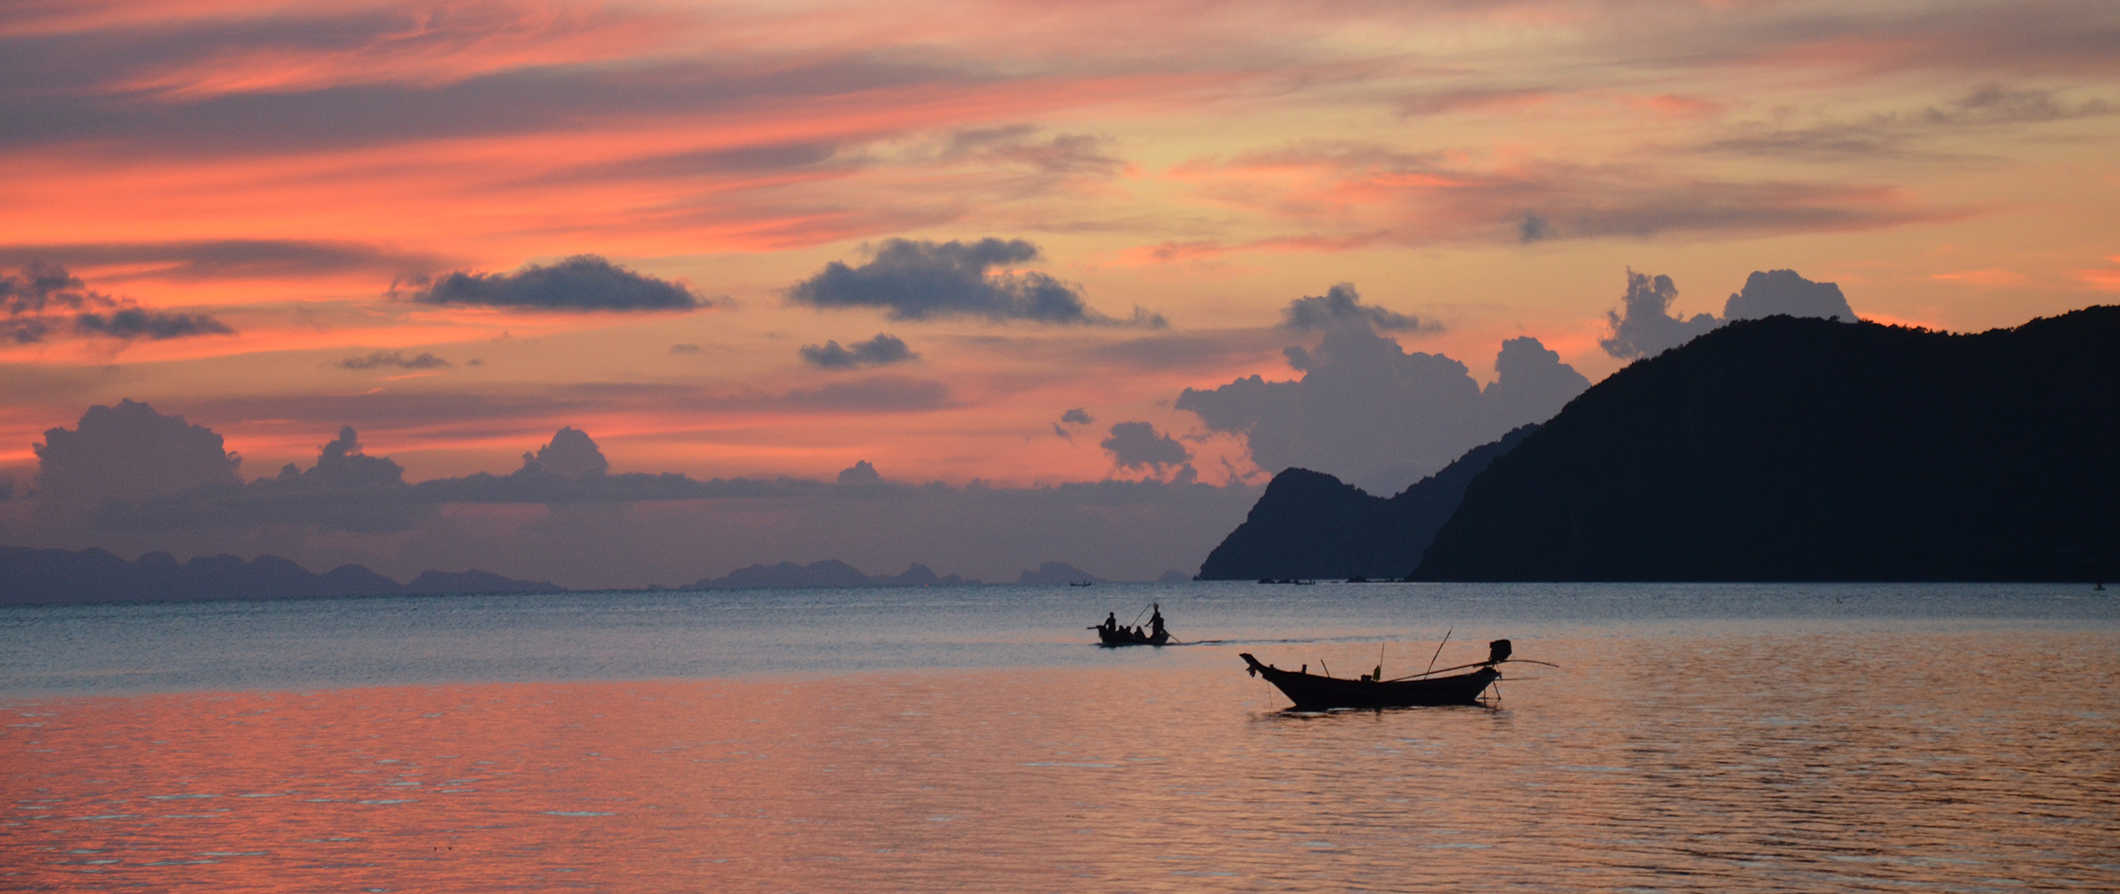 Ko Pha Ngan at sunset